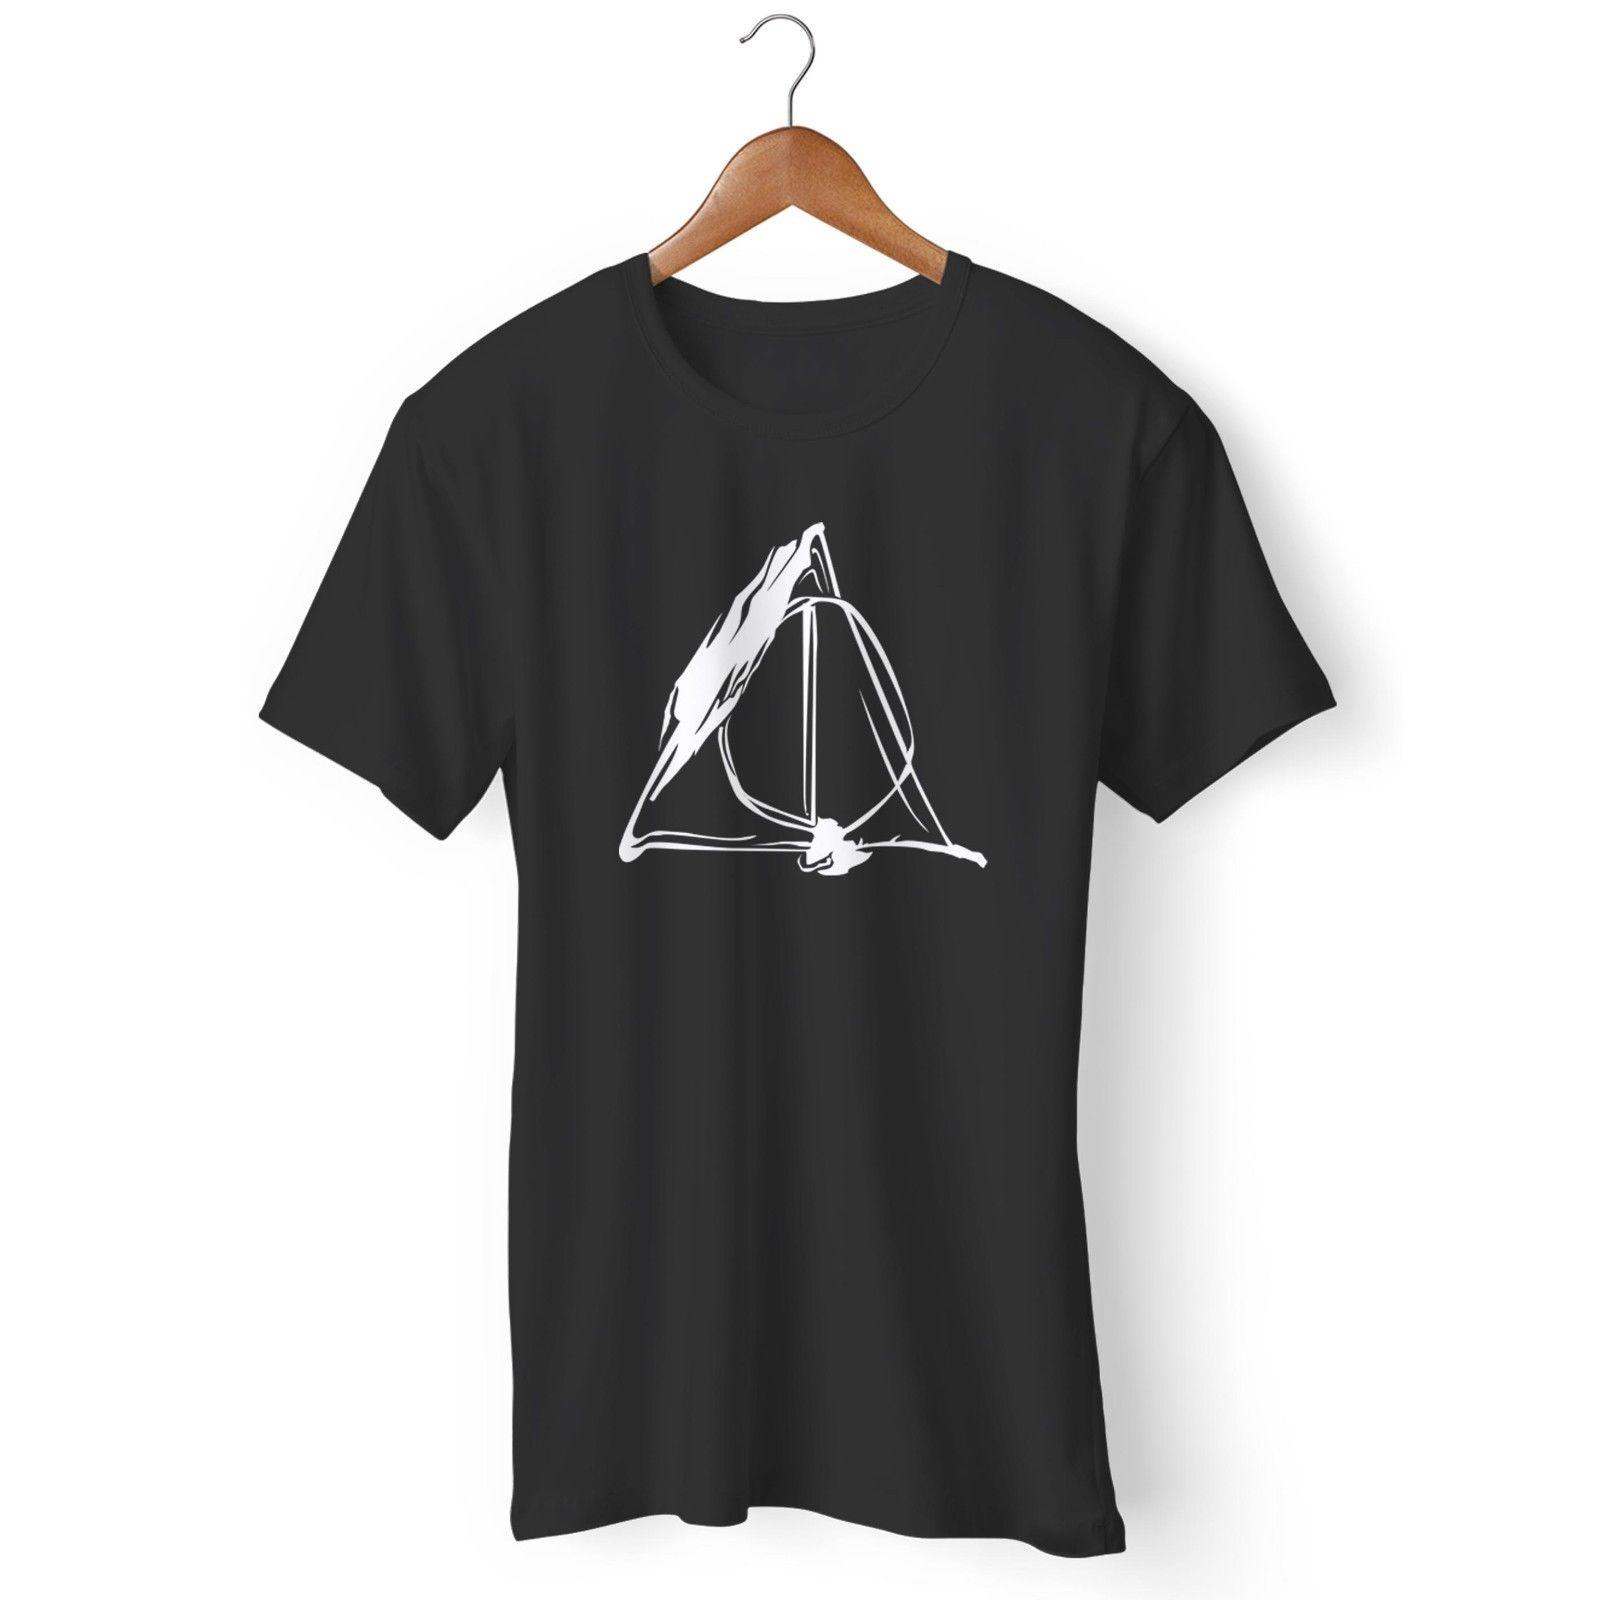 685a0f54 Deathly Hallows Symbol Harry Potter Always Harry Potte Man's and Woman's T- Shirt Funny free shipping Unisex Casual top